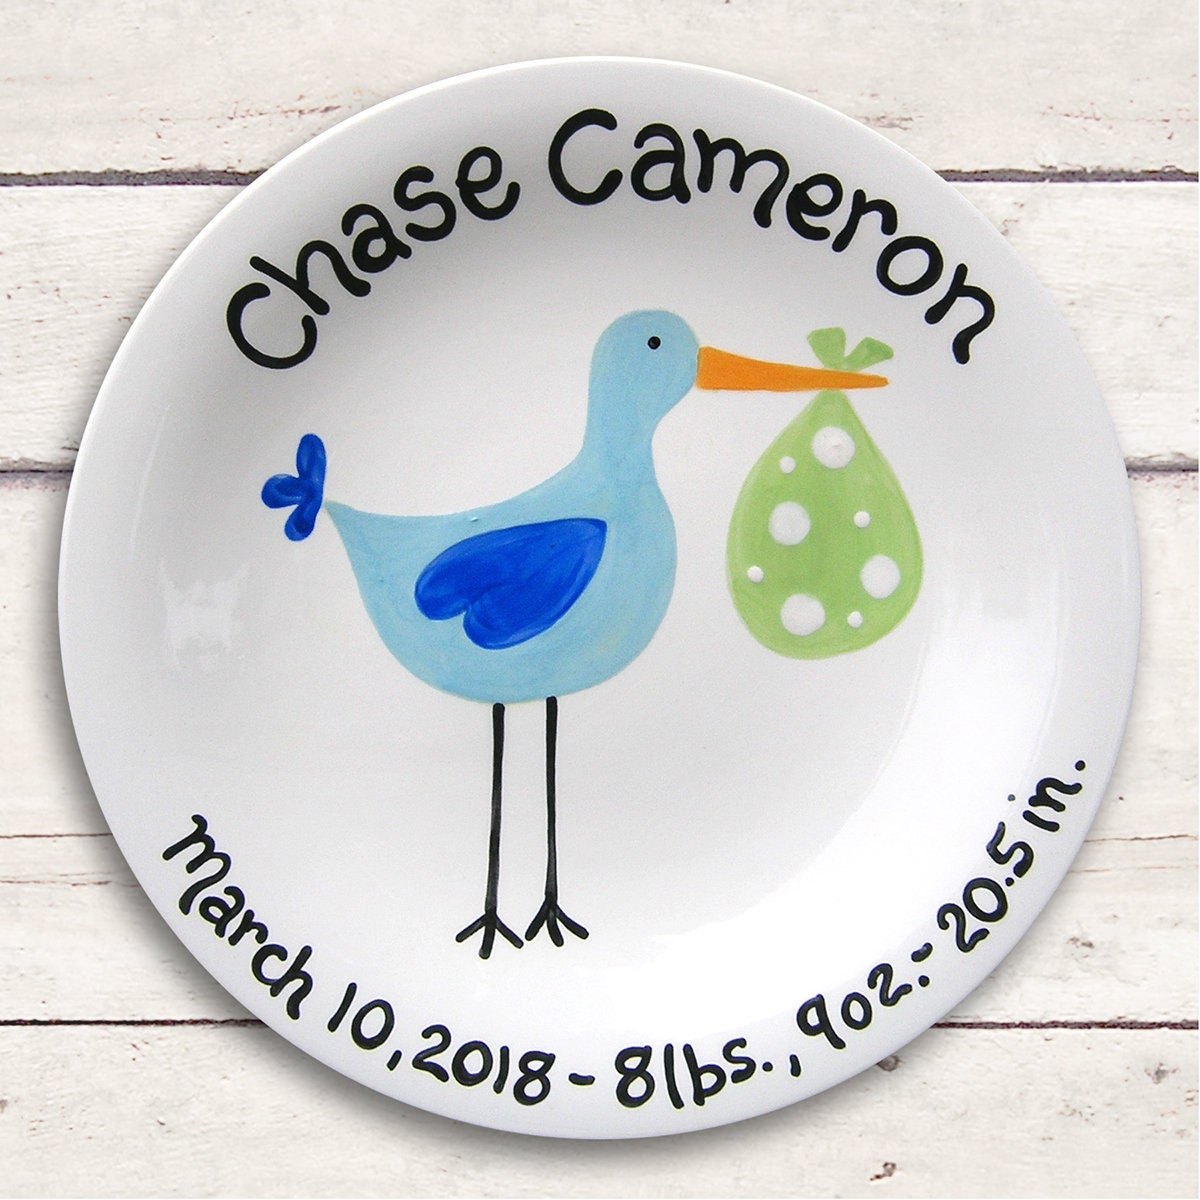 Baby Stork Ceramic Plate - Hand Painted Baby Gift - Stork Baby Shower - Sassy Stork Baby Boy - Personalized Gift for Newborn - New Baby  sc 1 st  Little Worm And Company & Baby Stork Ceramic Plate - Hand Painted Baby Gift - Stork Baby ...